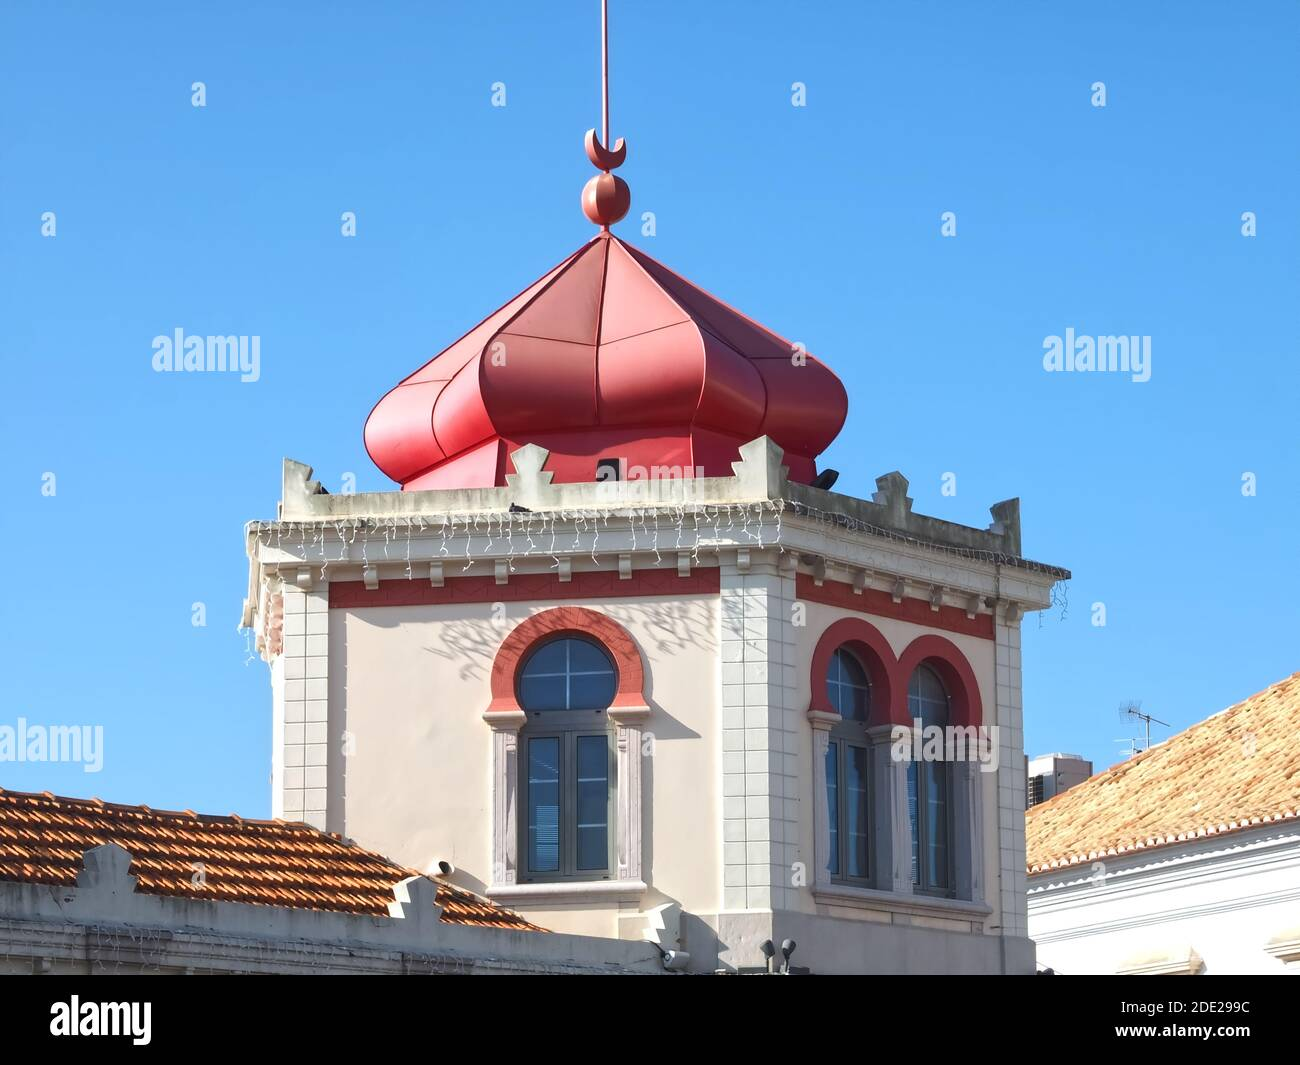 the beauty of Portugal- Pink market hall in Loule near Albufeira Stock Photo